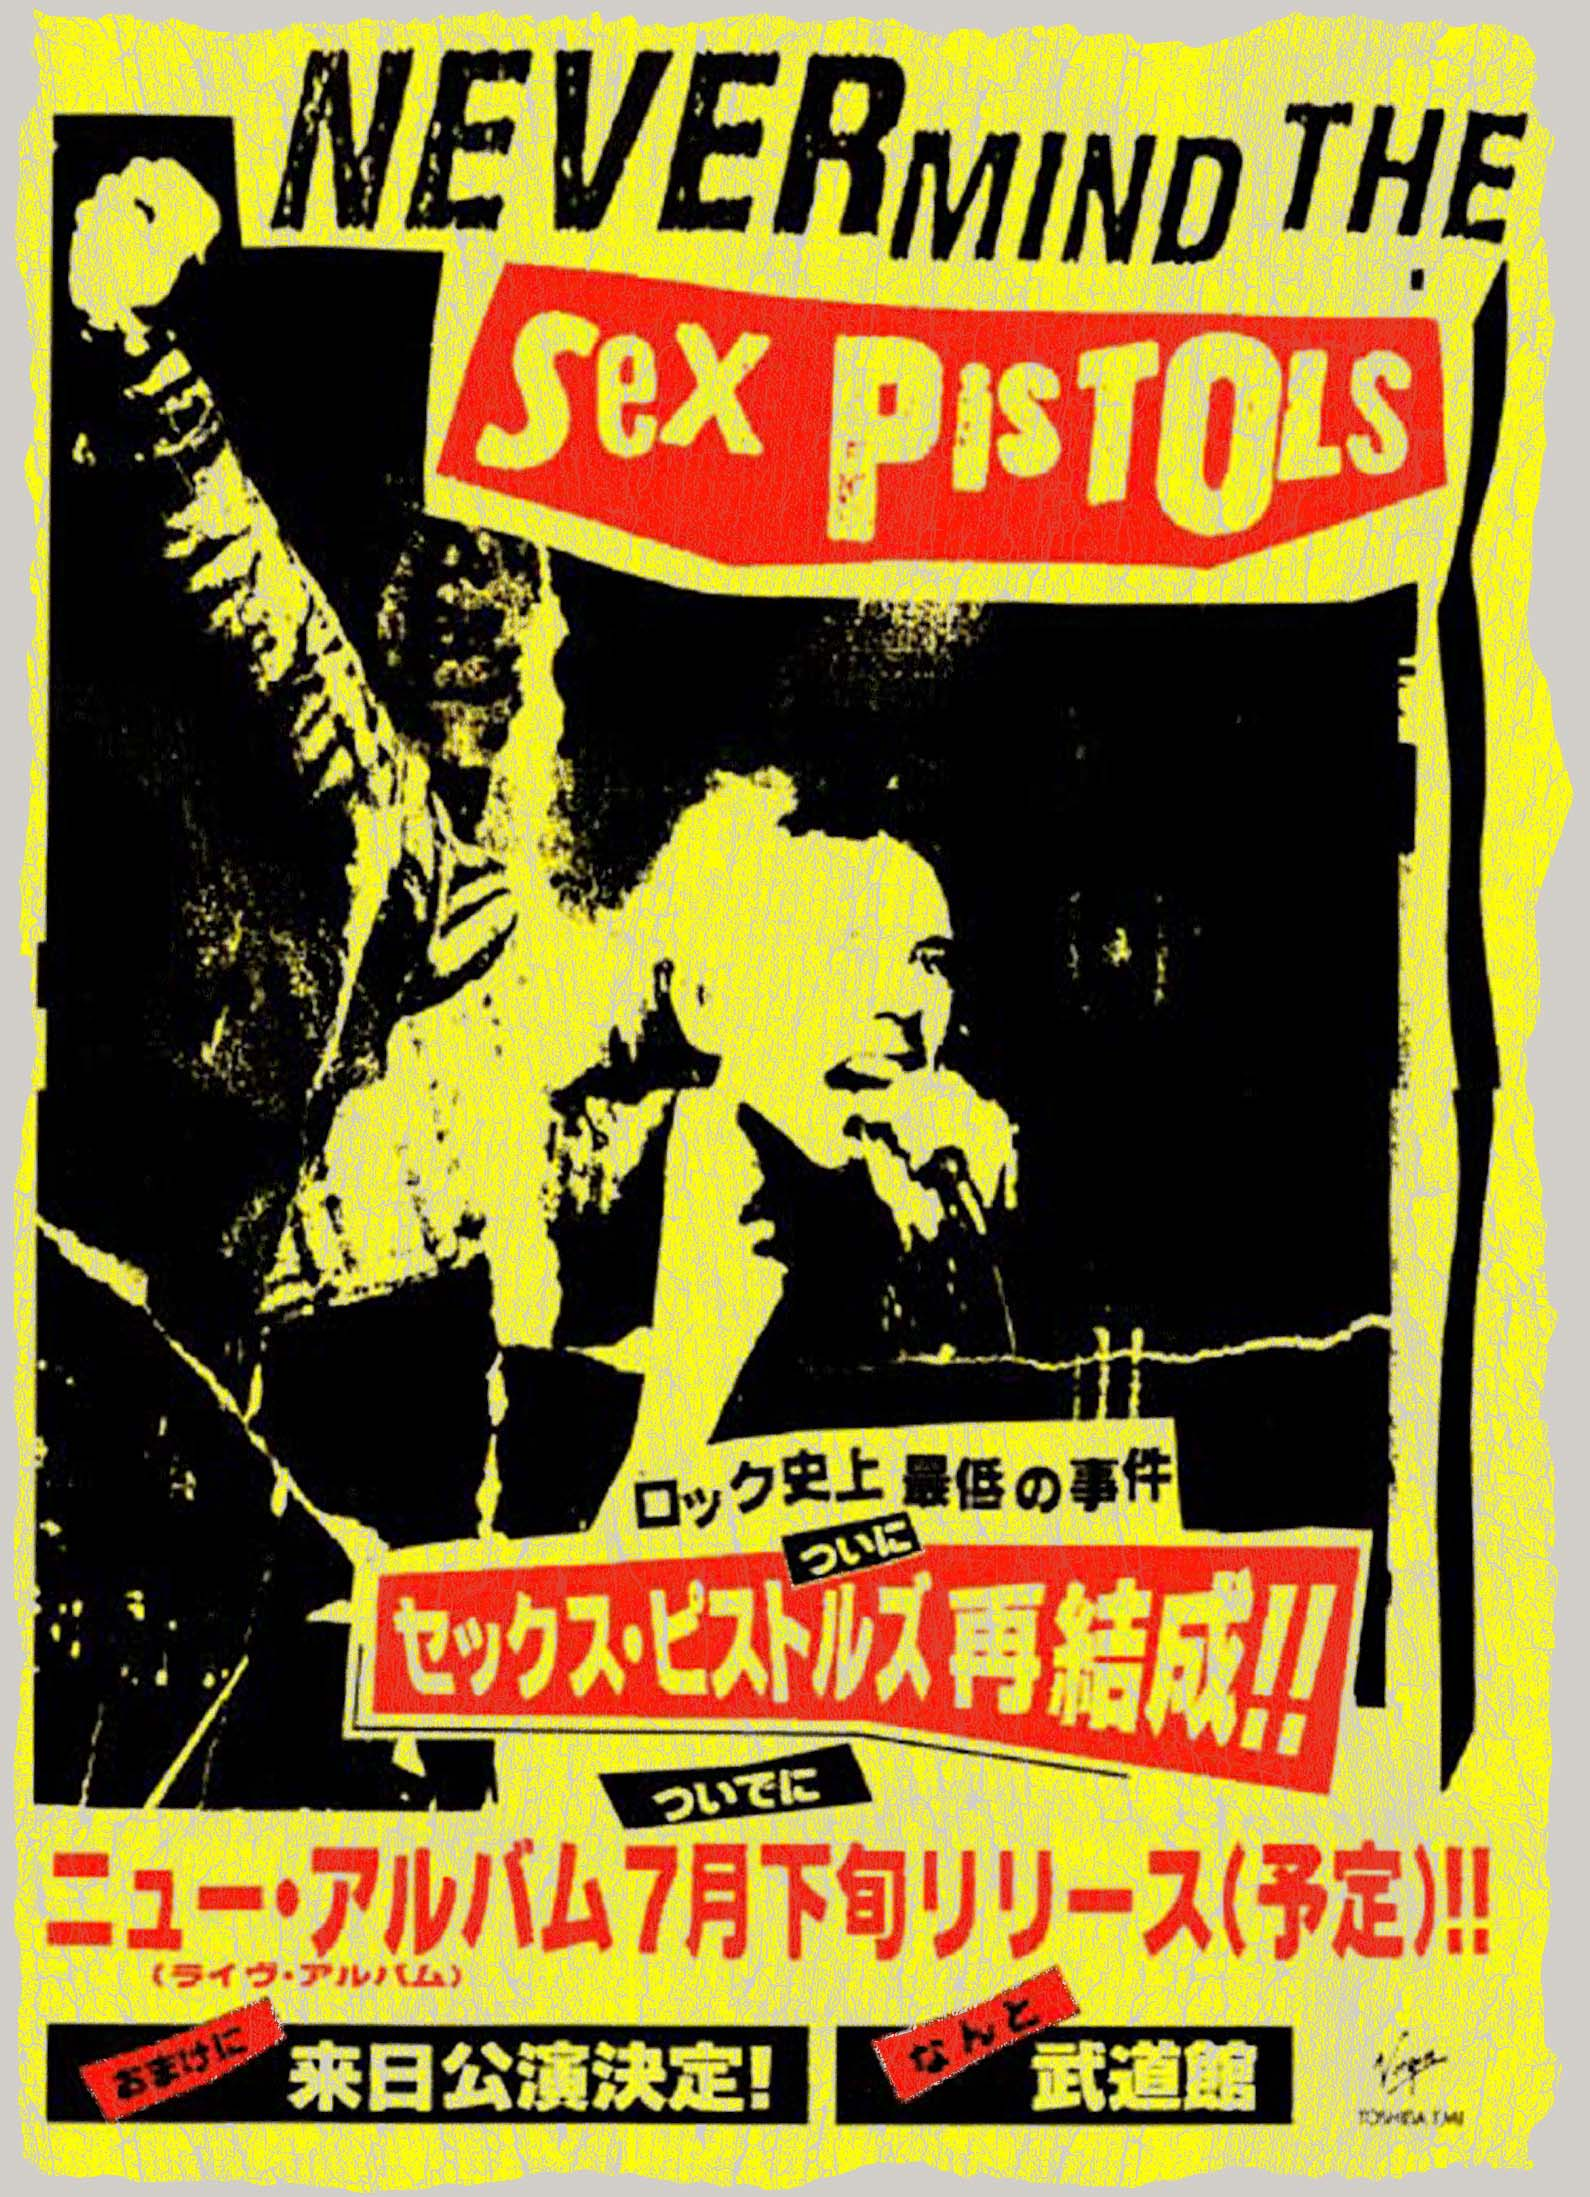 Filthy Lucre Japanese Tour - Press Ad 1996